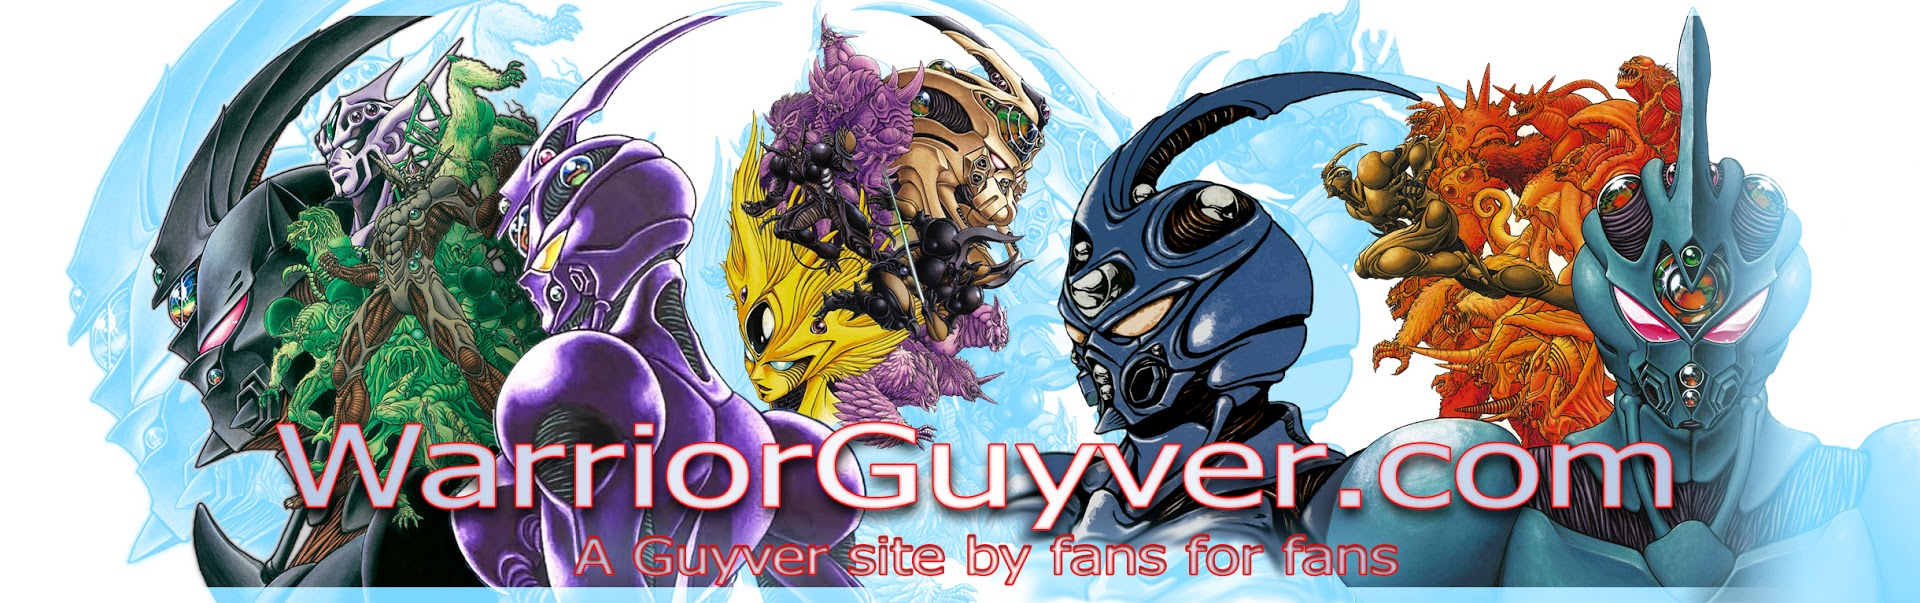 Warrior Guyver.com